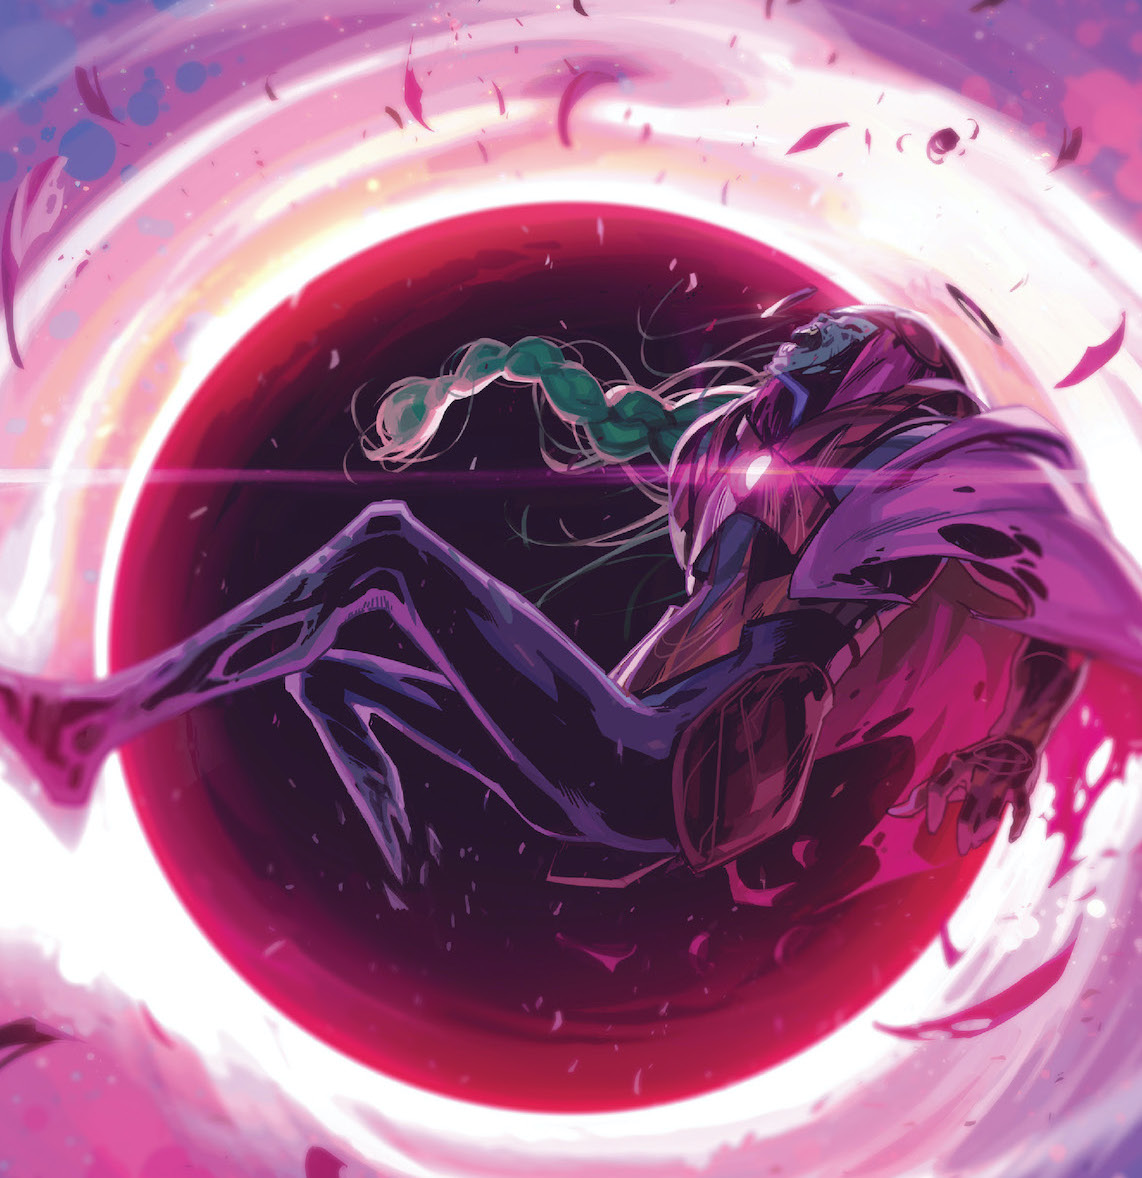 BOOM! Preview: We Only Find Them When They Are Dead #4